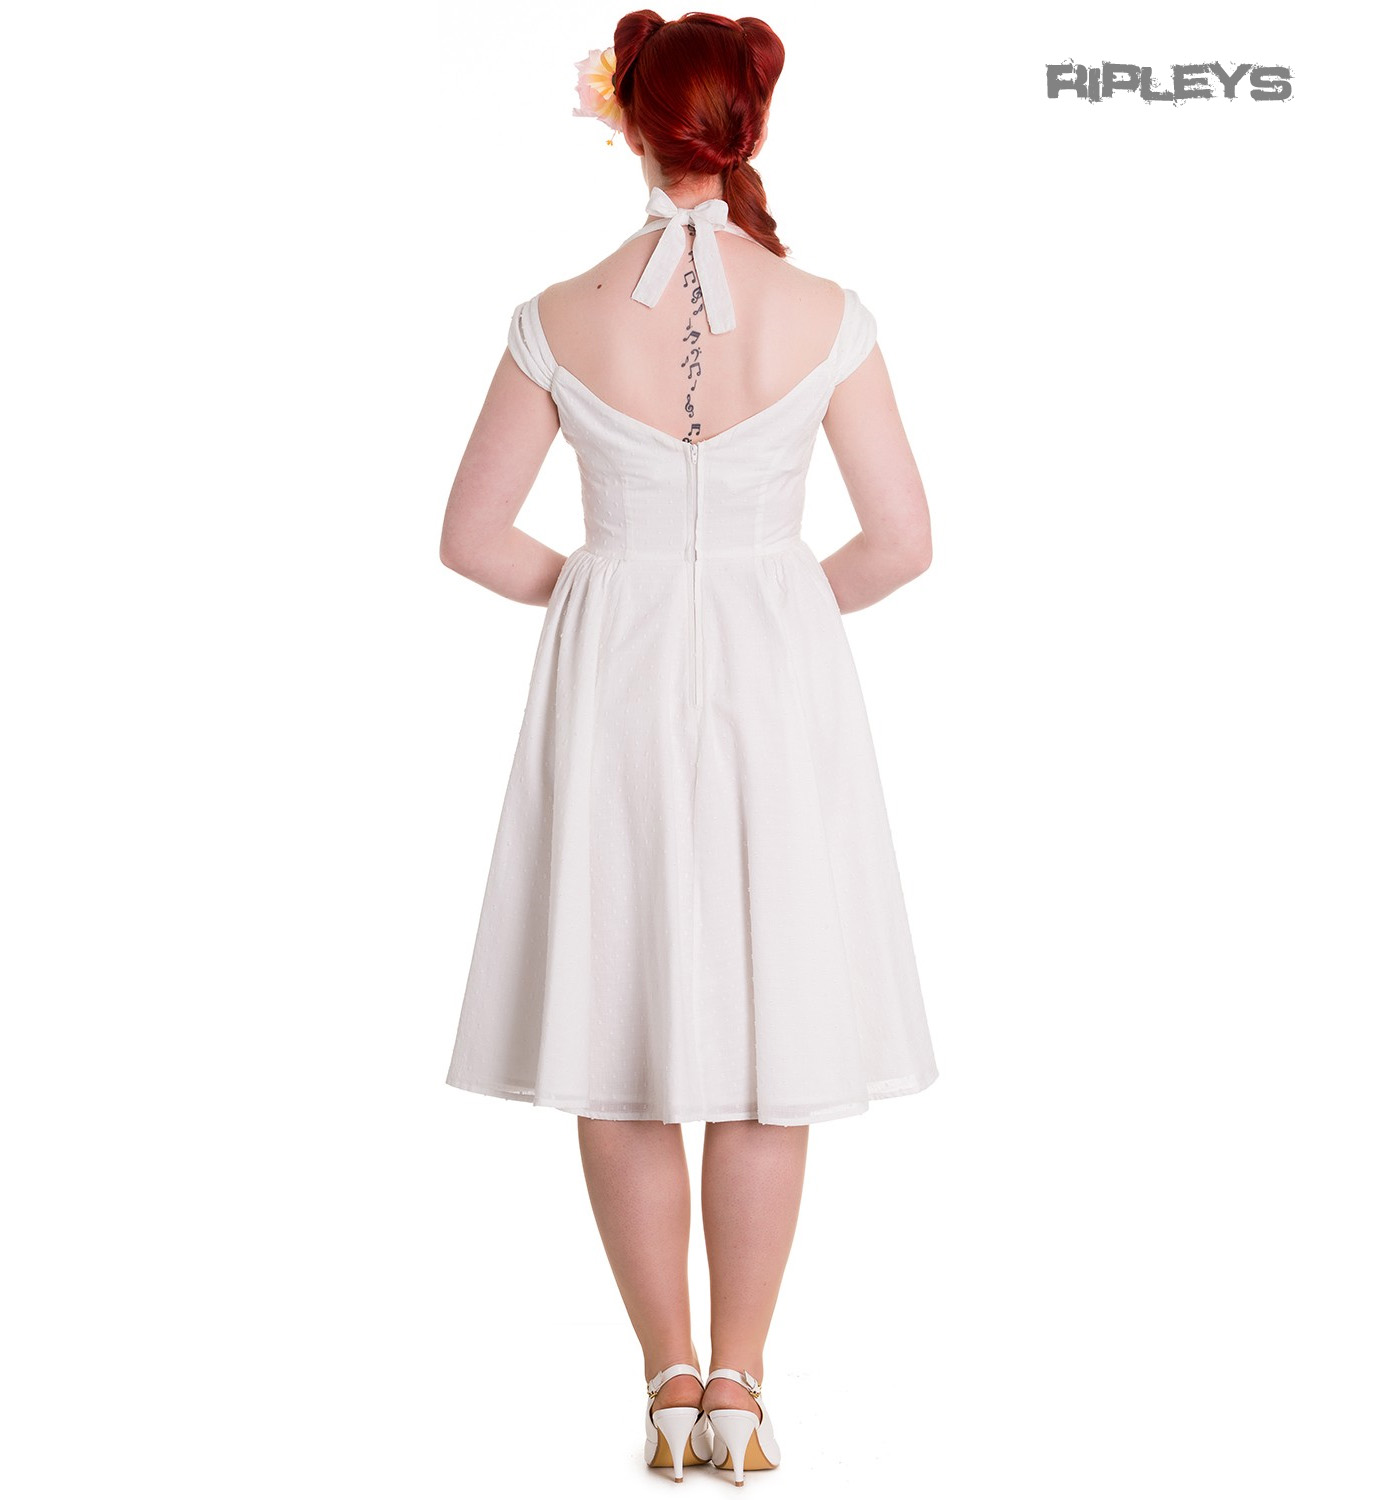 Hell-Bunny-Pin-Up-Party-50s-Dress-Vintage-Rockabilly-EVELINE-White-All-Sizes thumbnail 16